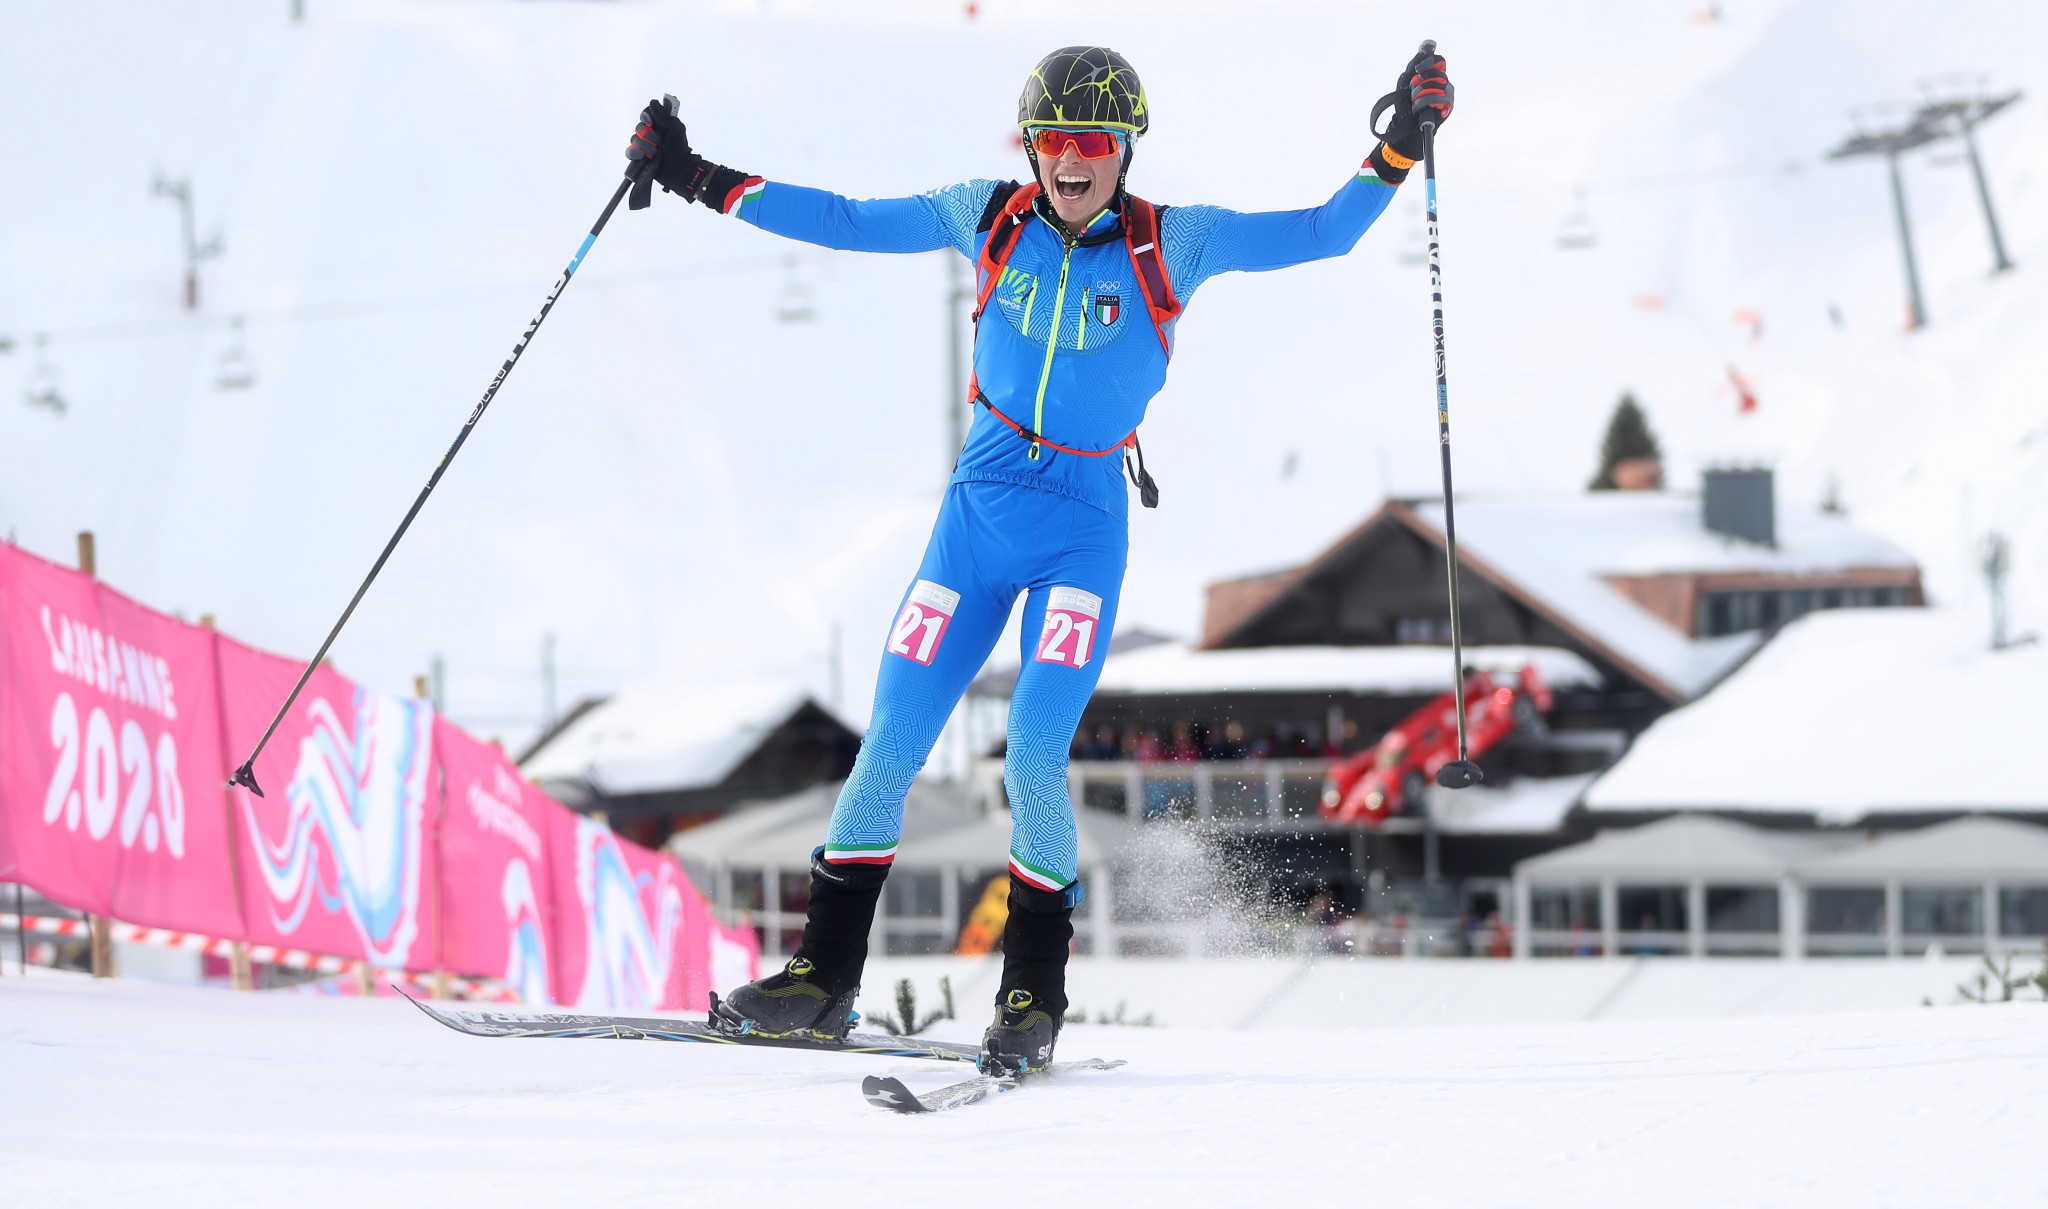 Italian wants Winter Olympic Games inclusion after claiming ski mountaineering gold at Lausanne 2020